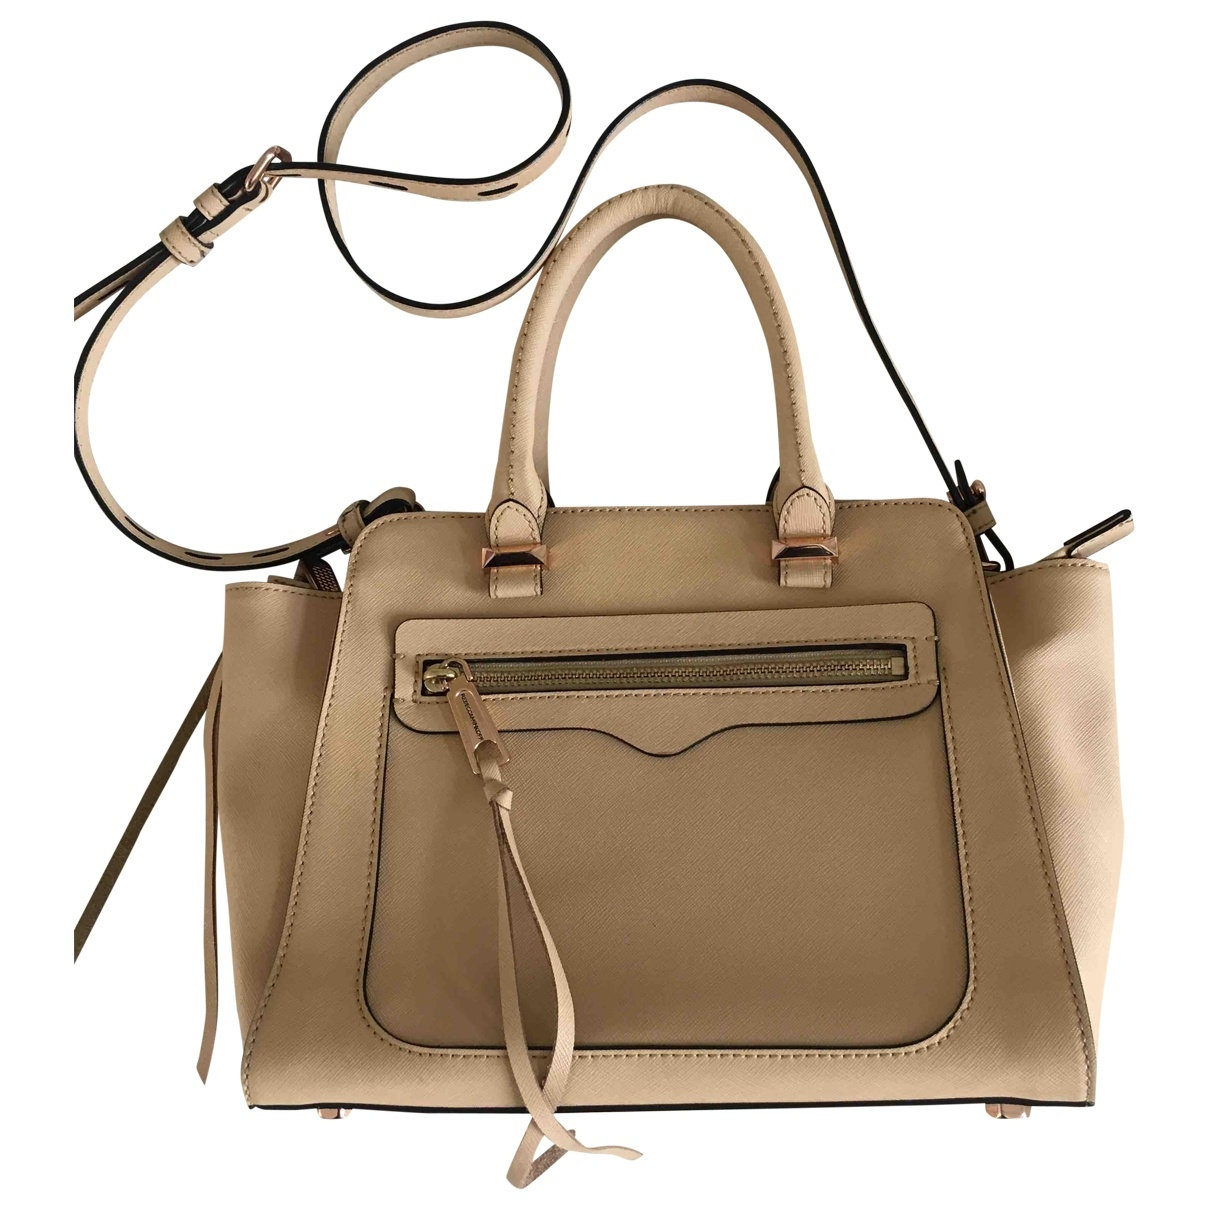 Rebecca Minkoff \N Beige Leather handbag for Women \N